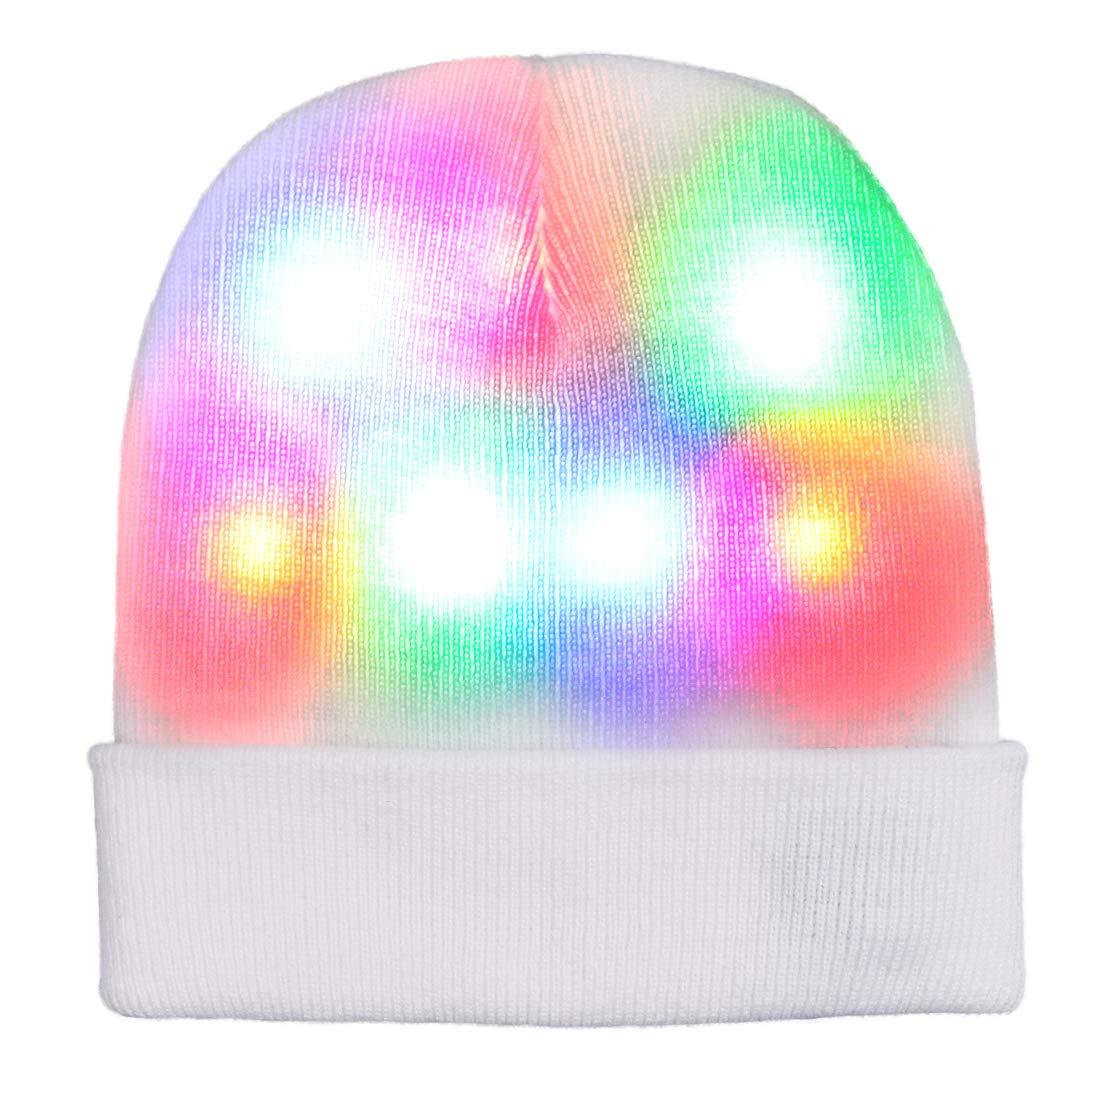 Aolibang Light up Hat Beanie LED Christmas Hat with 3 Mode Colorful Lights for Adults Women Men Kids Girls Boys Best Funny Gifts